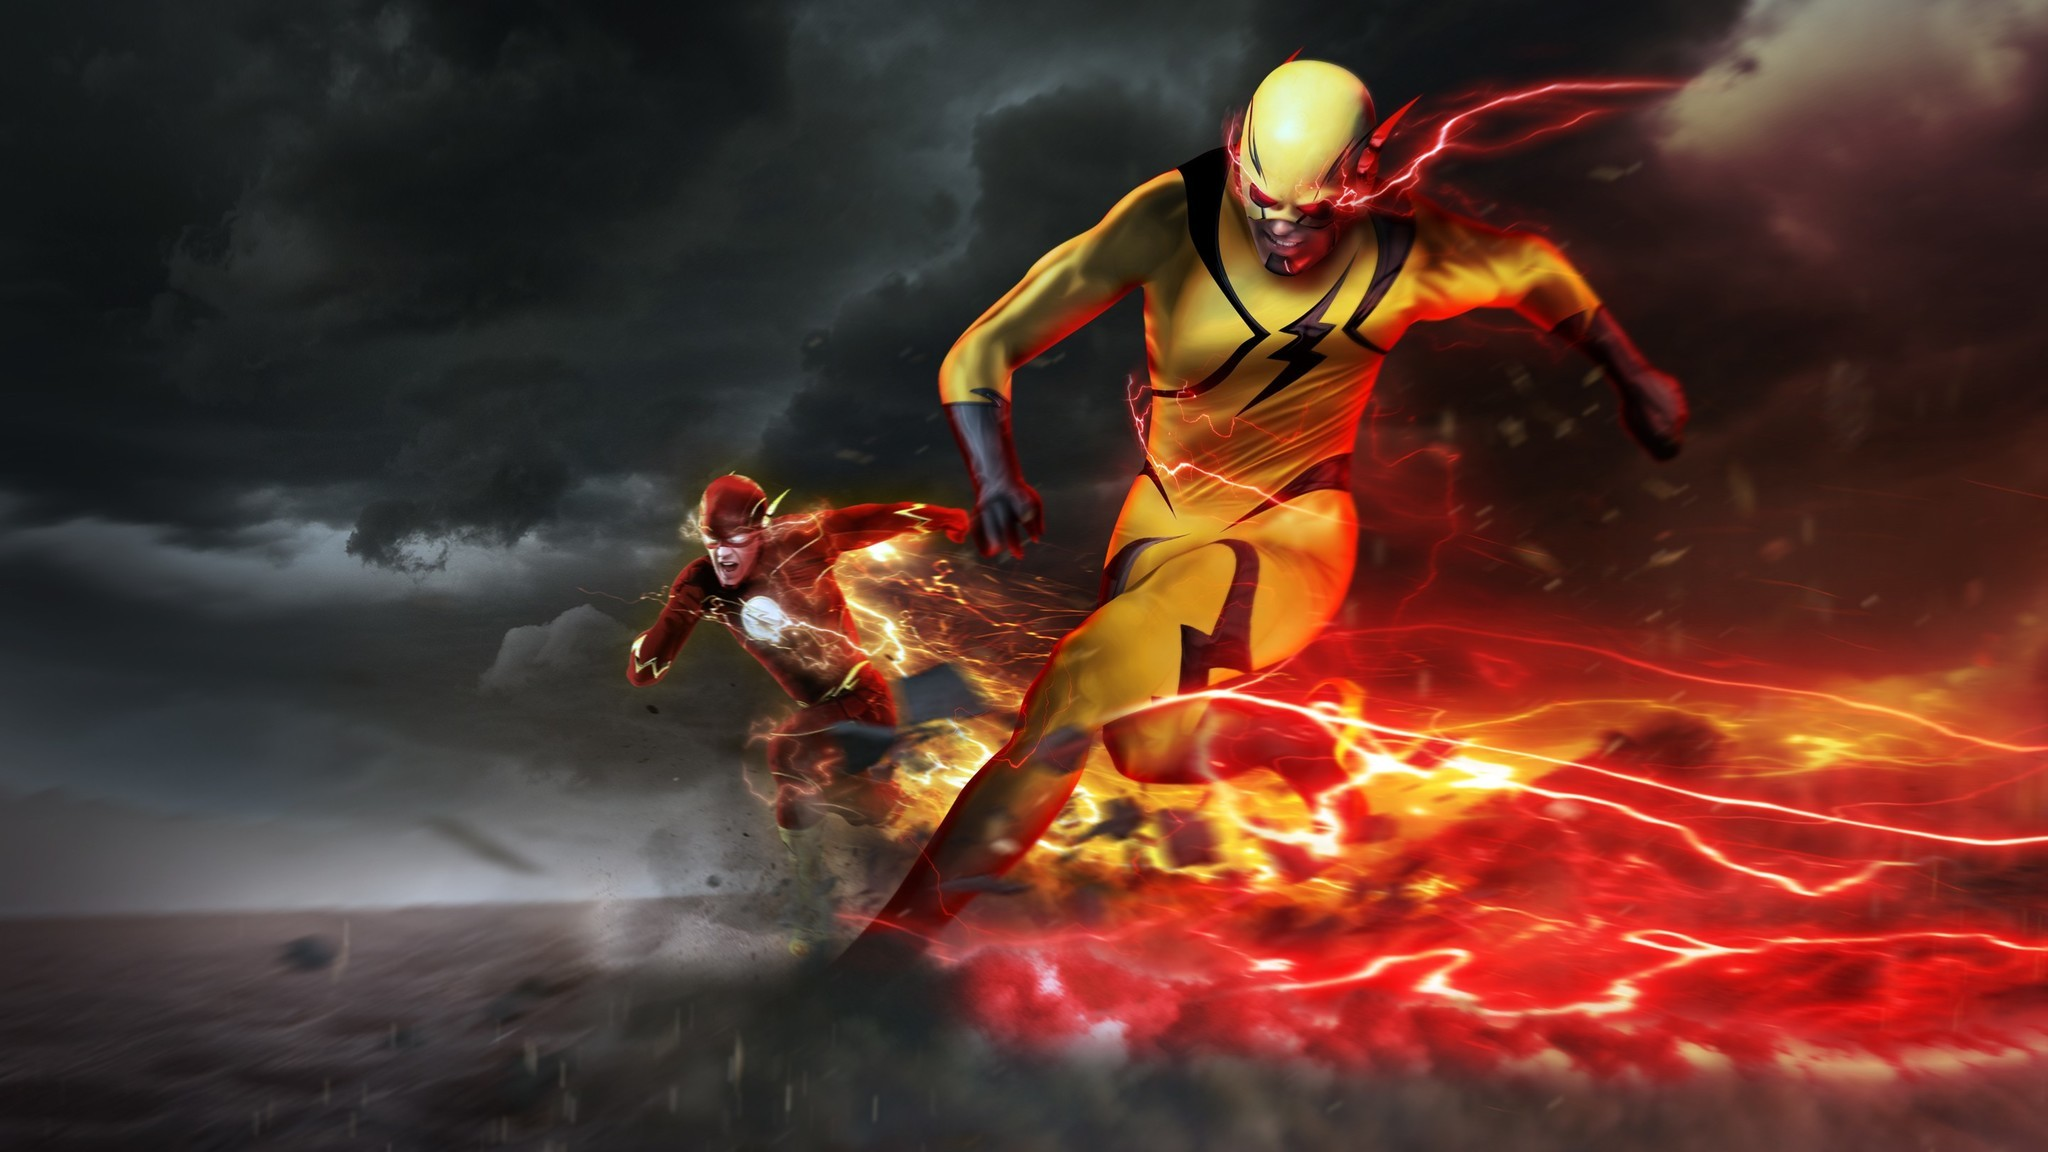 … download zoom in flash hd 4k wallpapers in screen resolution; the  flash wallpapers wallpaper …